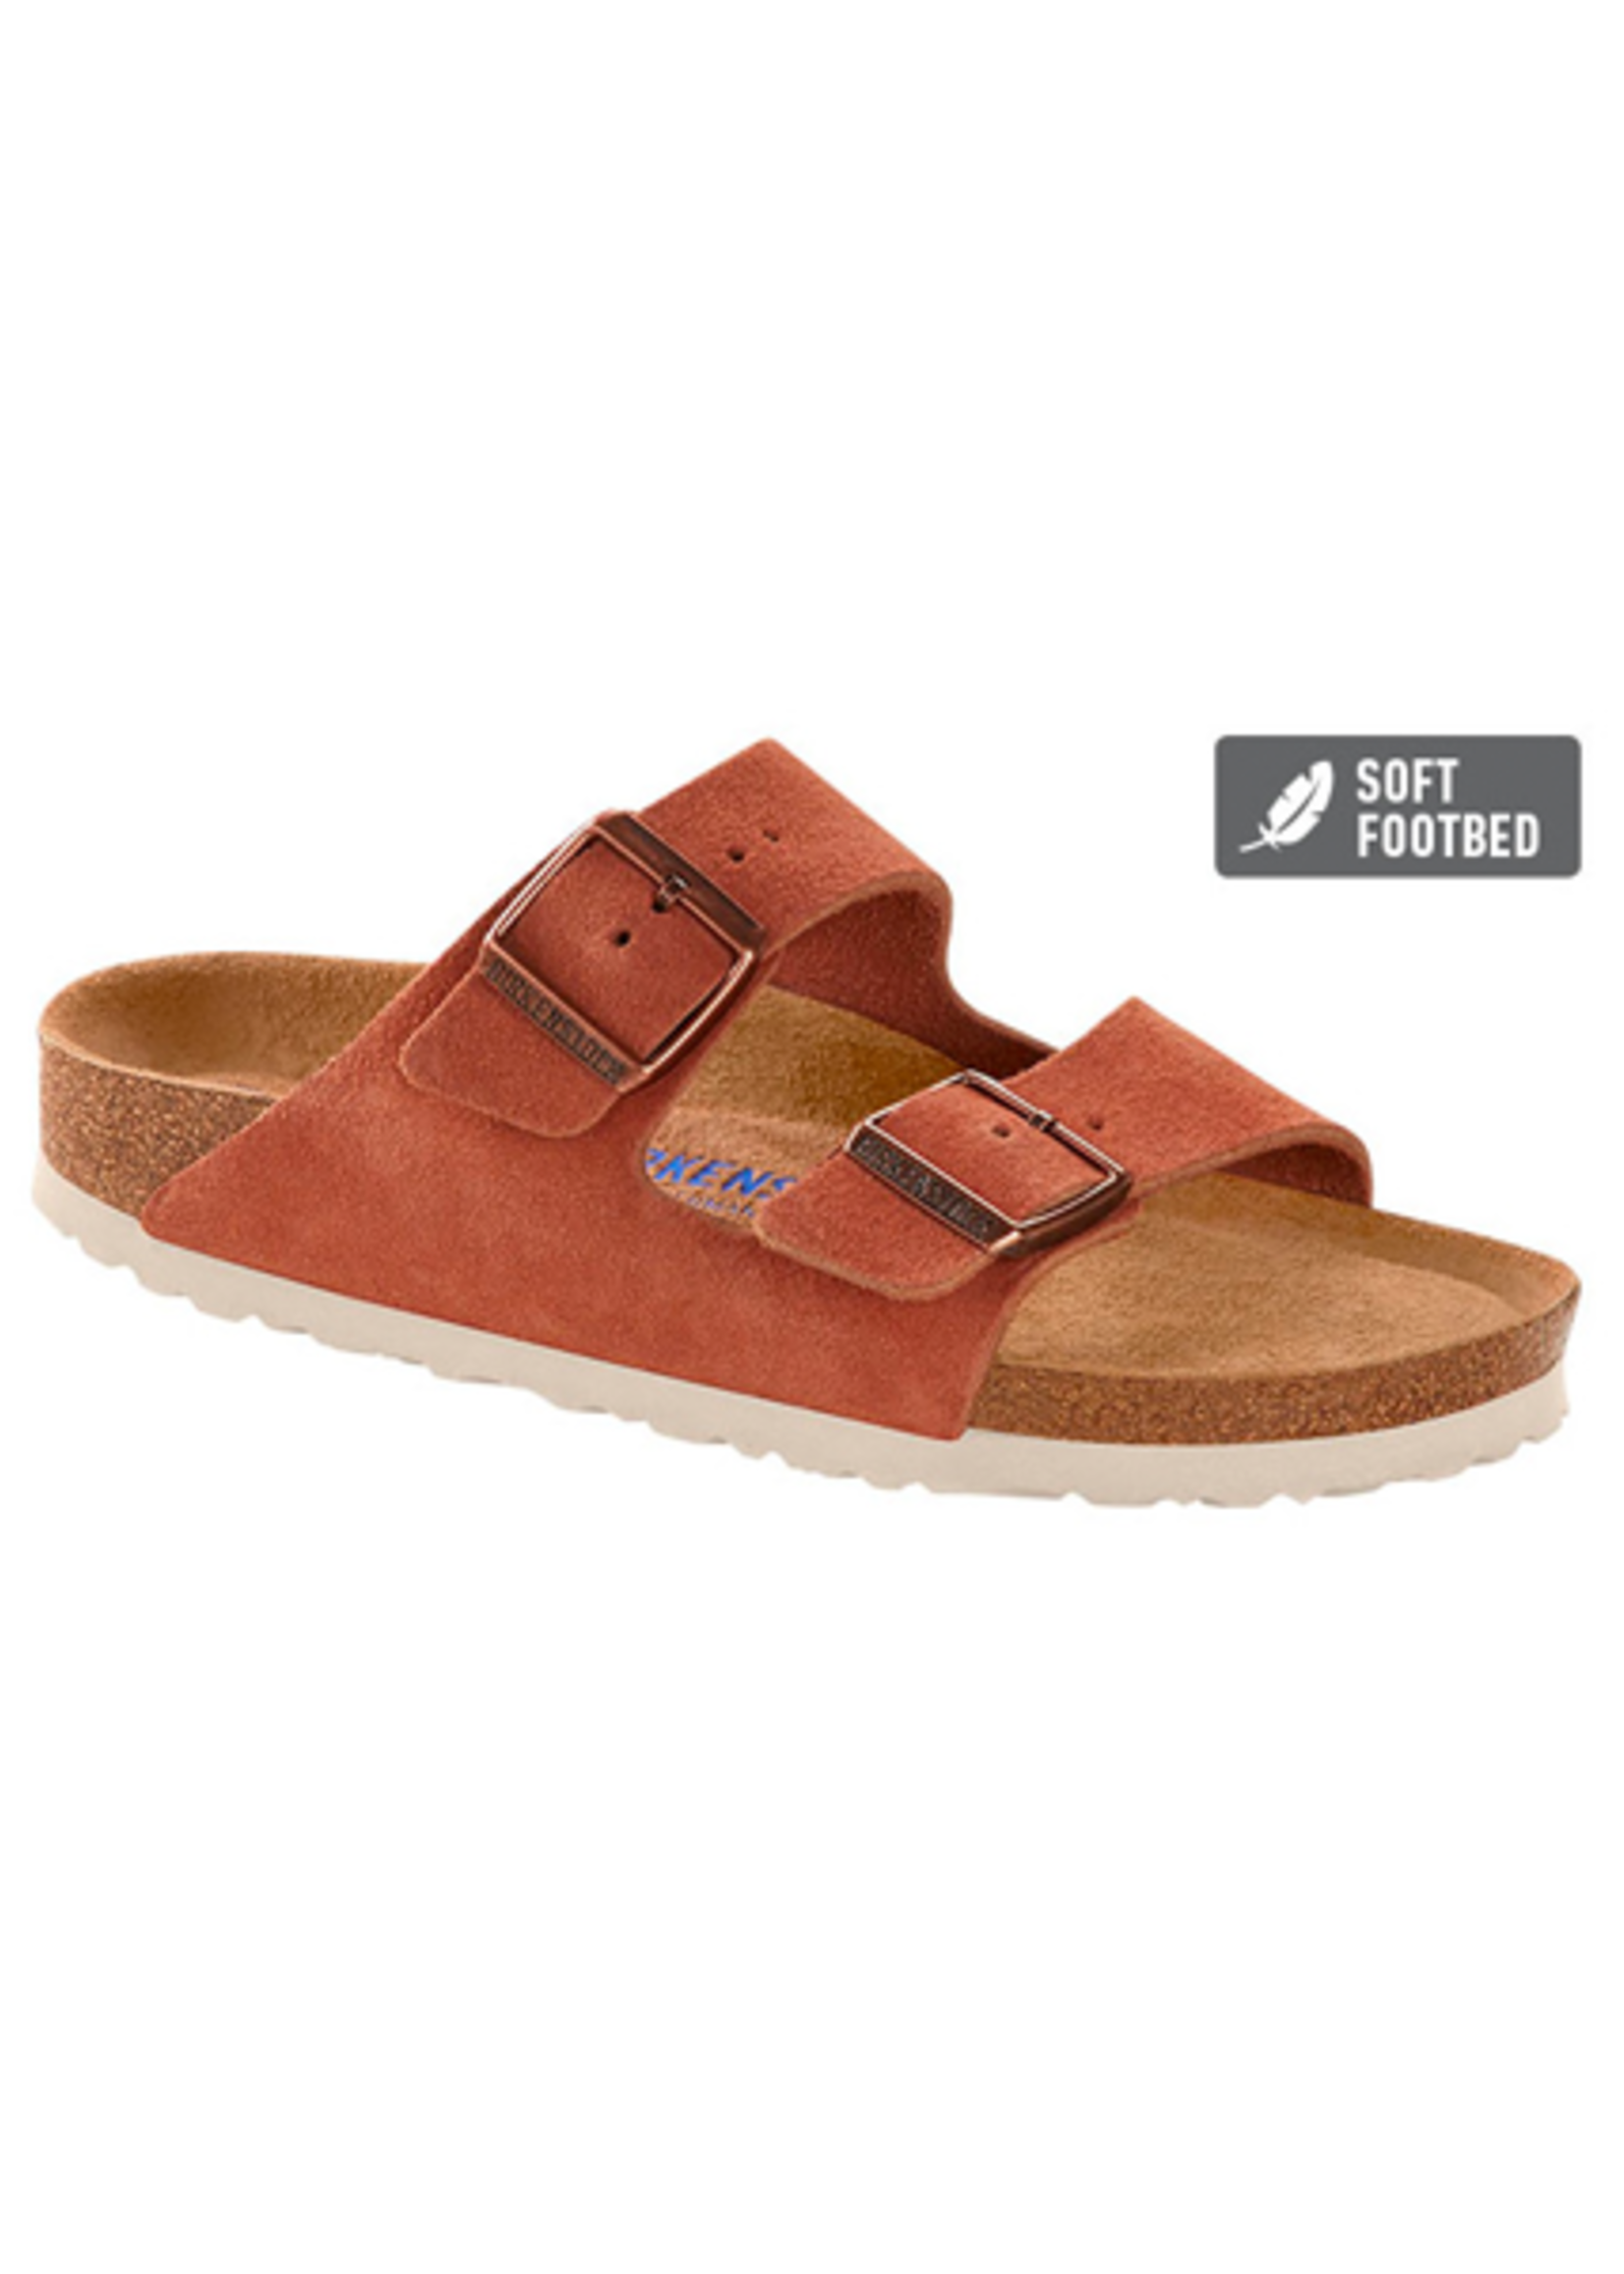 Birkenstock Arizona - Suede Leather in Earth Red (Soft Footbed - Suede Lined)